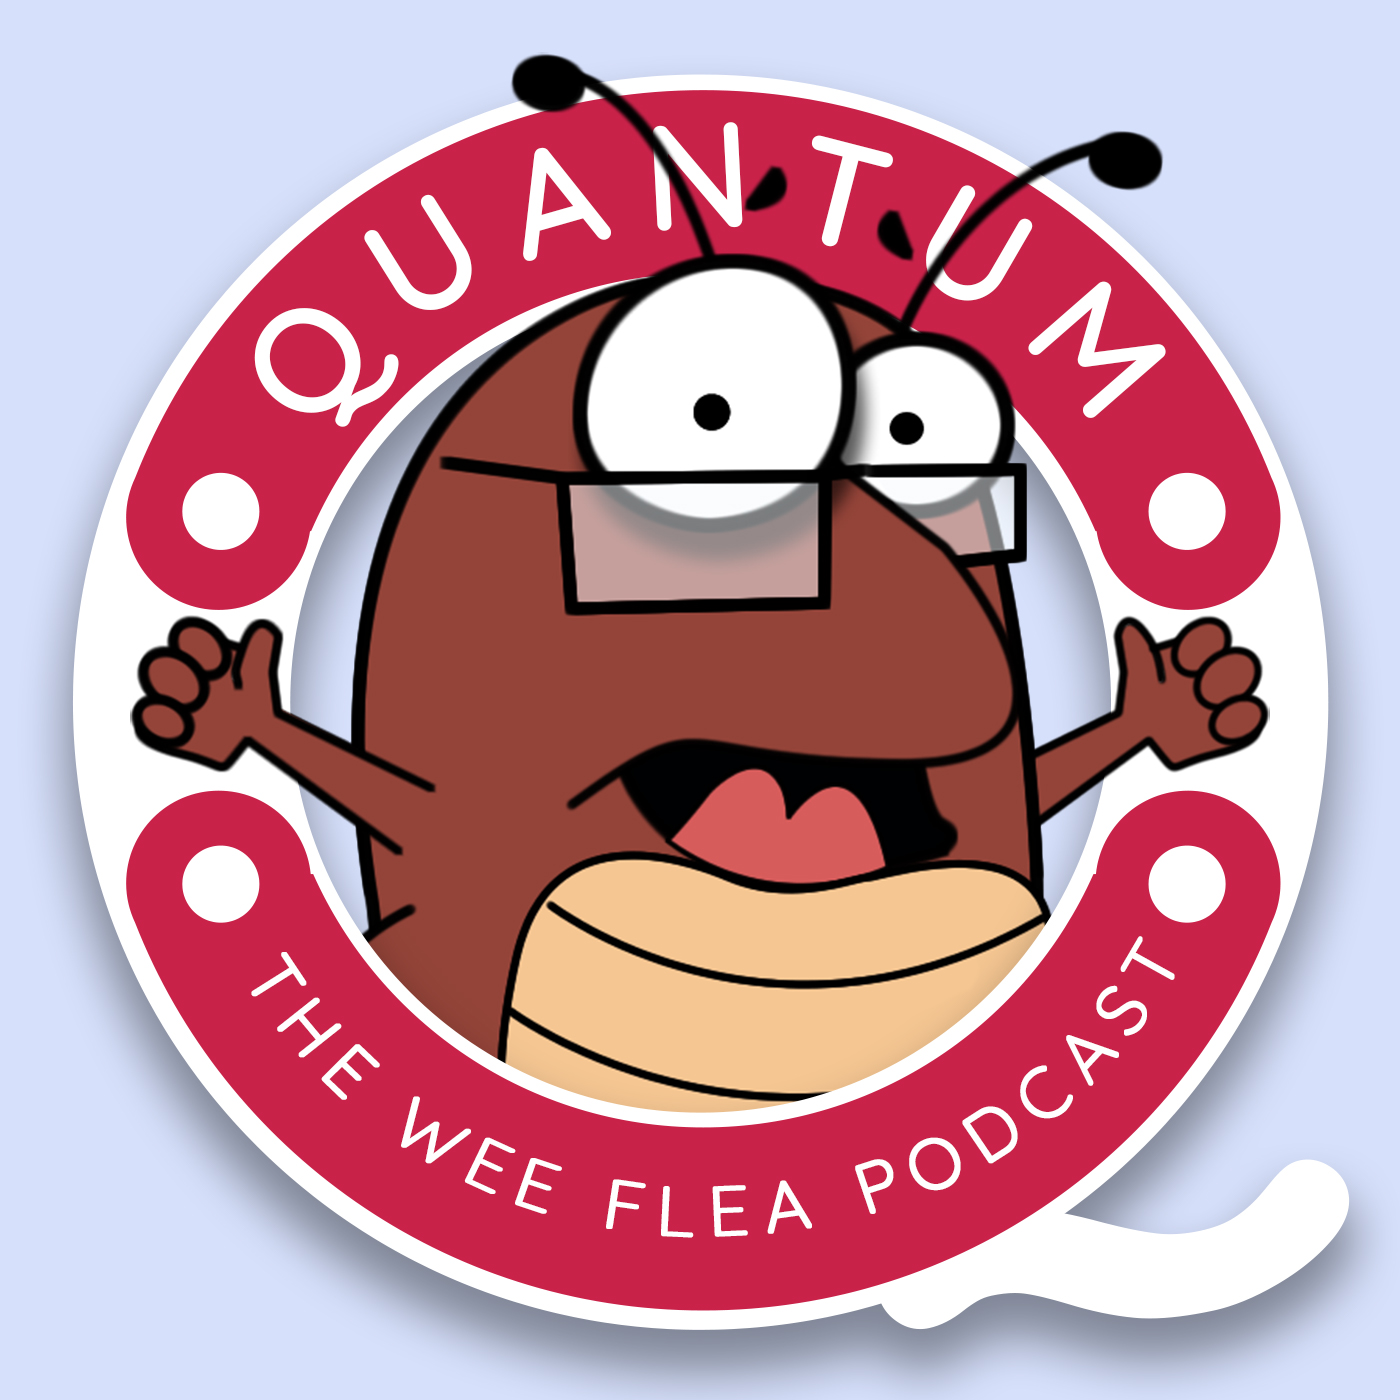 Quantum - The Wee Flea Podcast